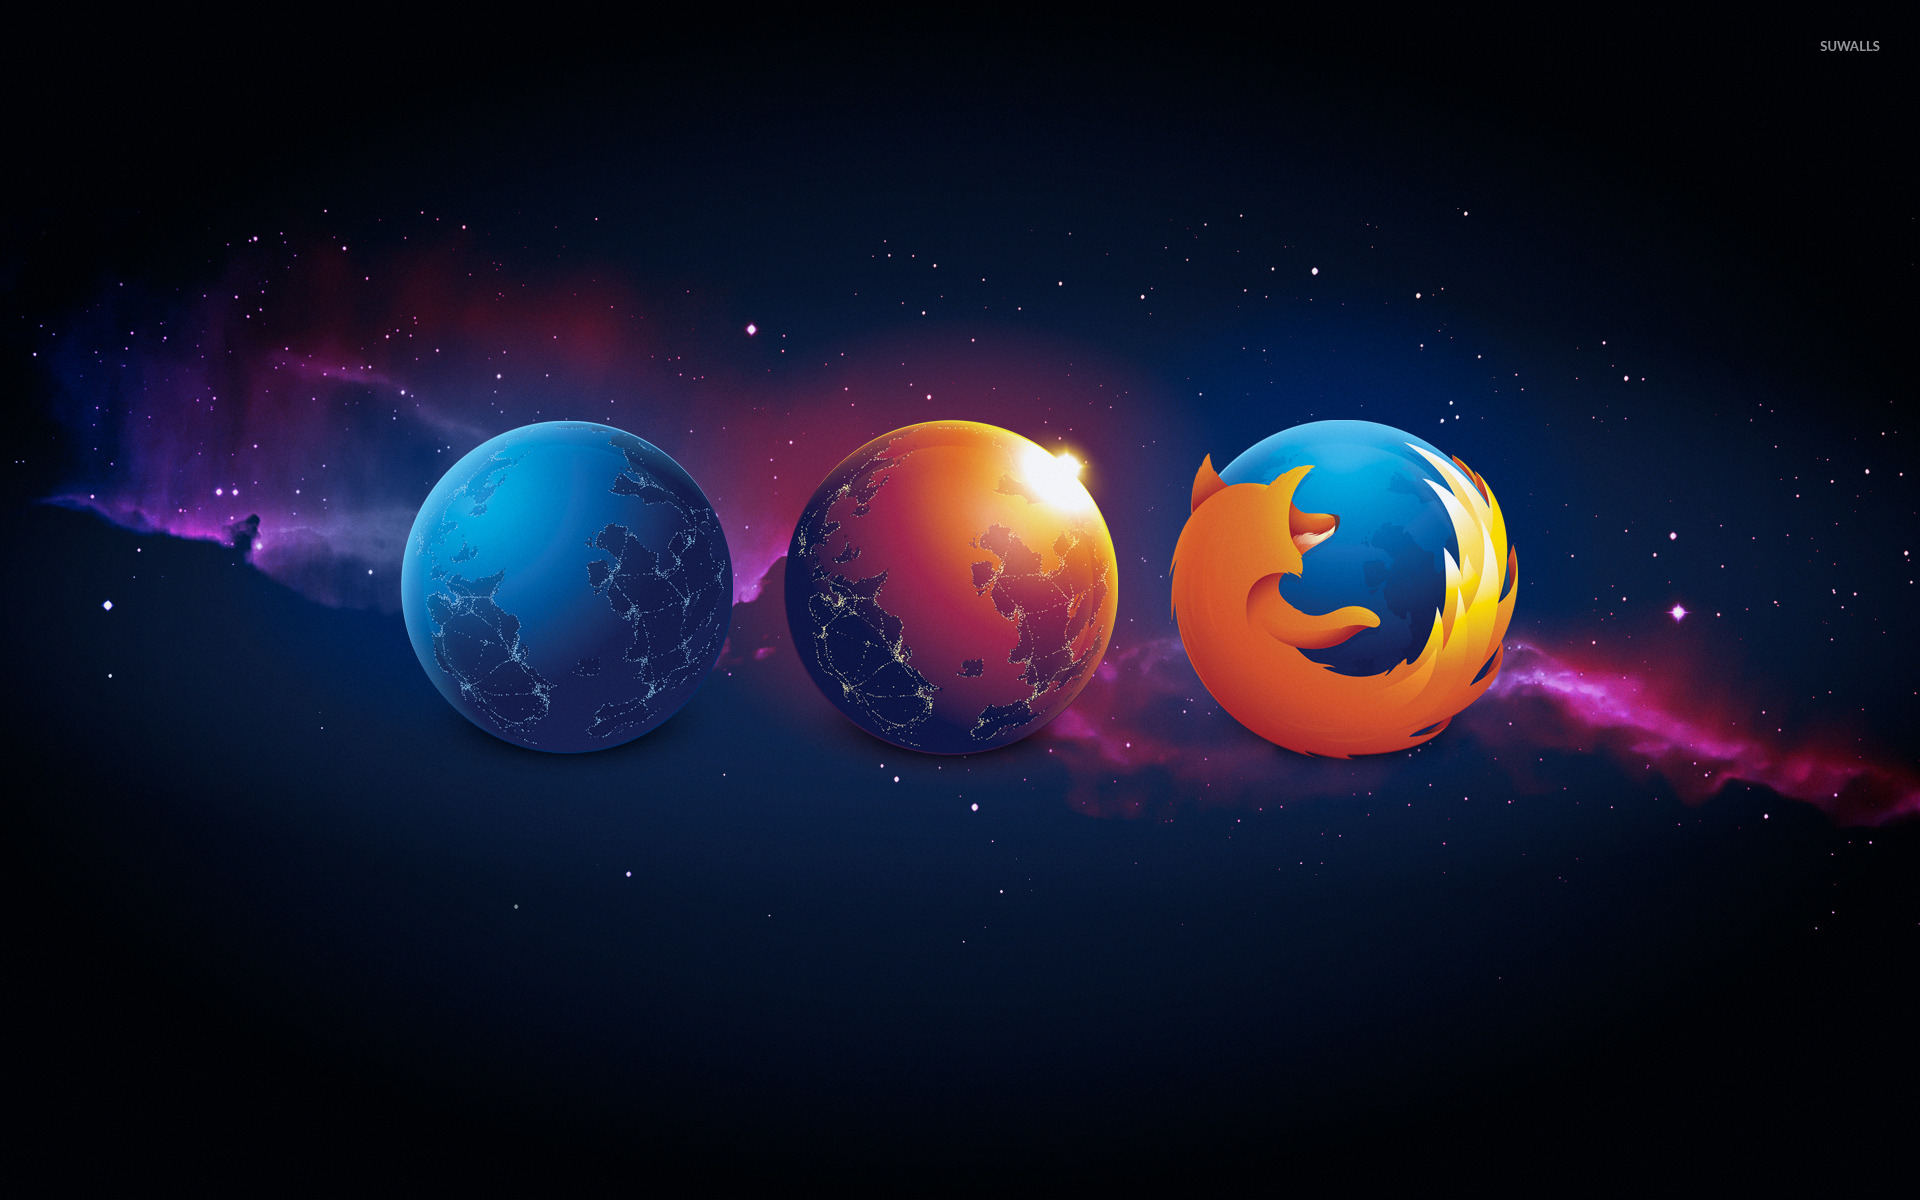 earth and mozilla firefox wallpaper - computer wallpapers - #29775